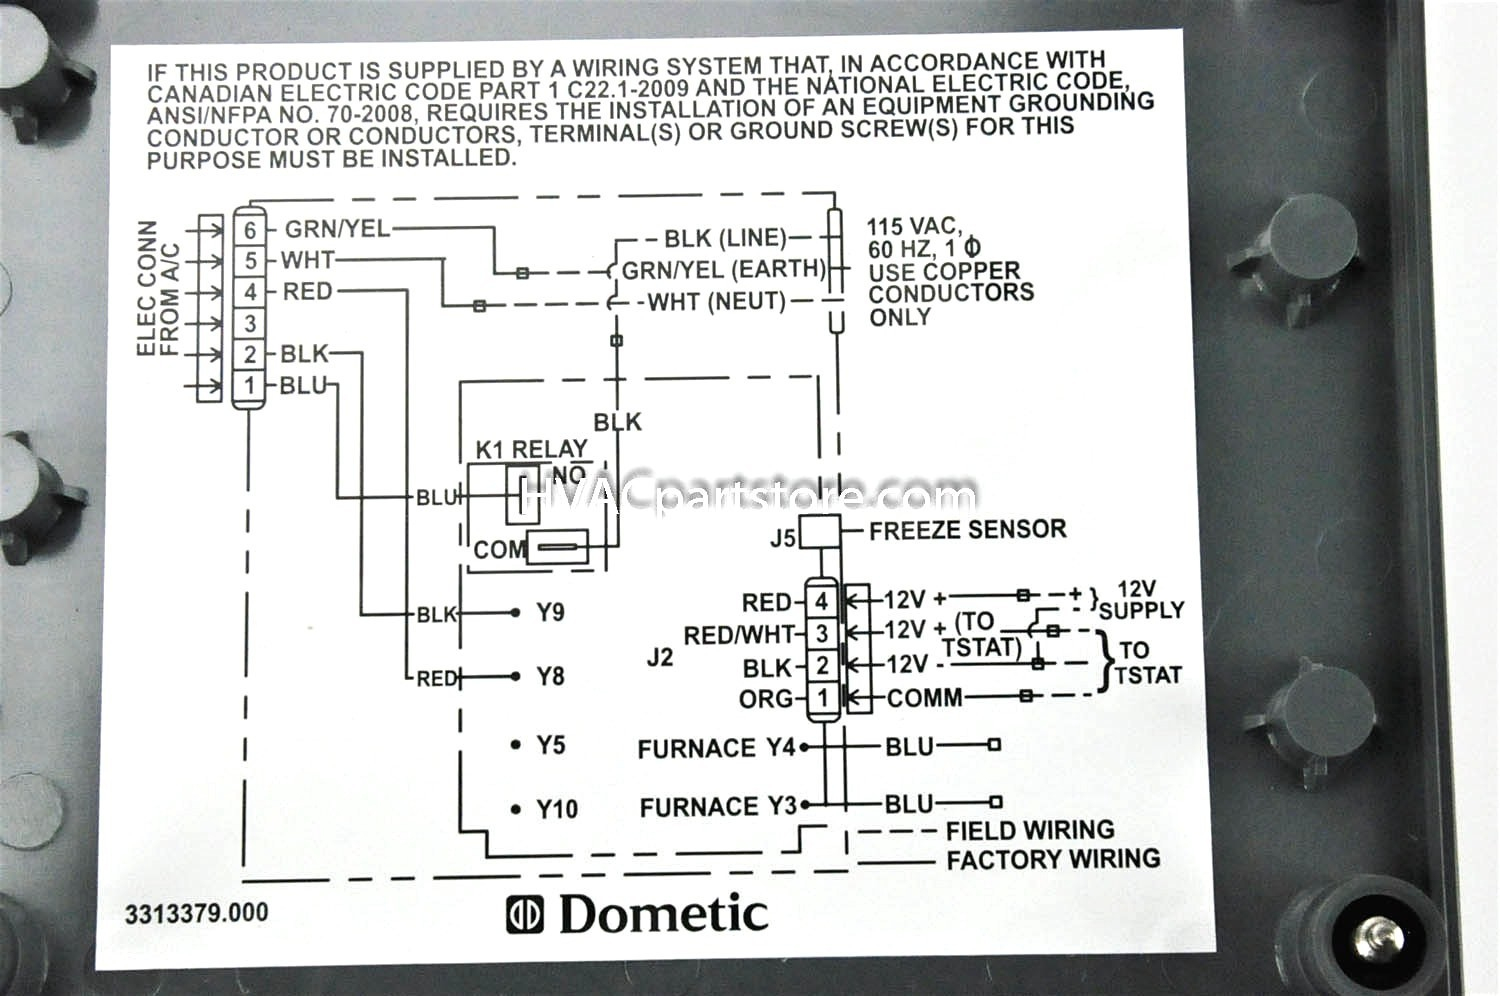 30 Rv Wiring Diagram Coleman Mach Thermostat | Wiring Diagram - Coleman Mach Rv Thermostat Wiring Diagram